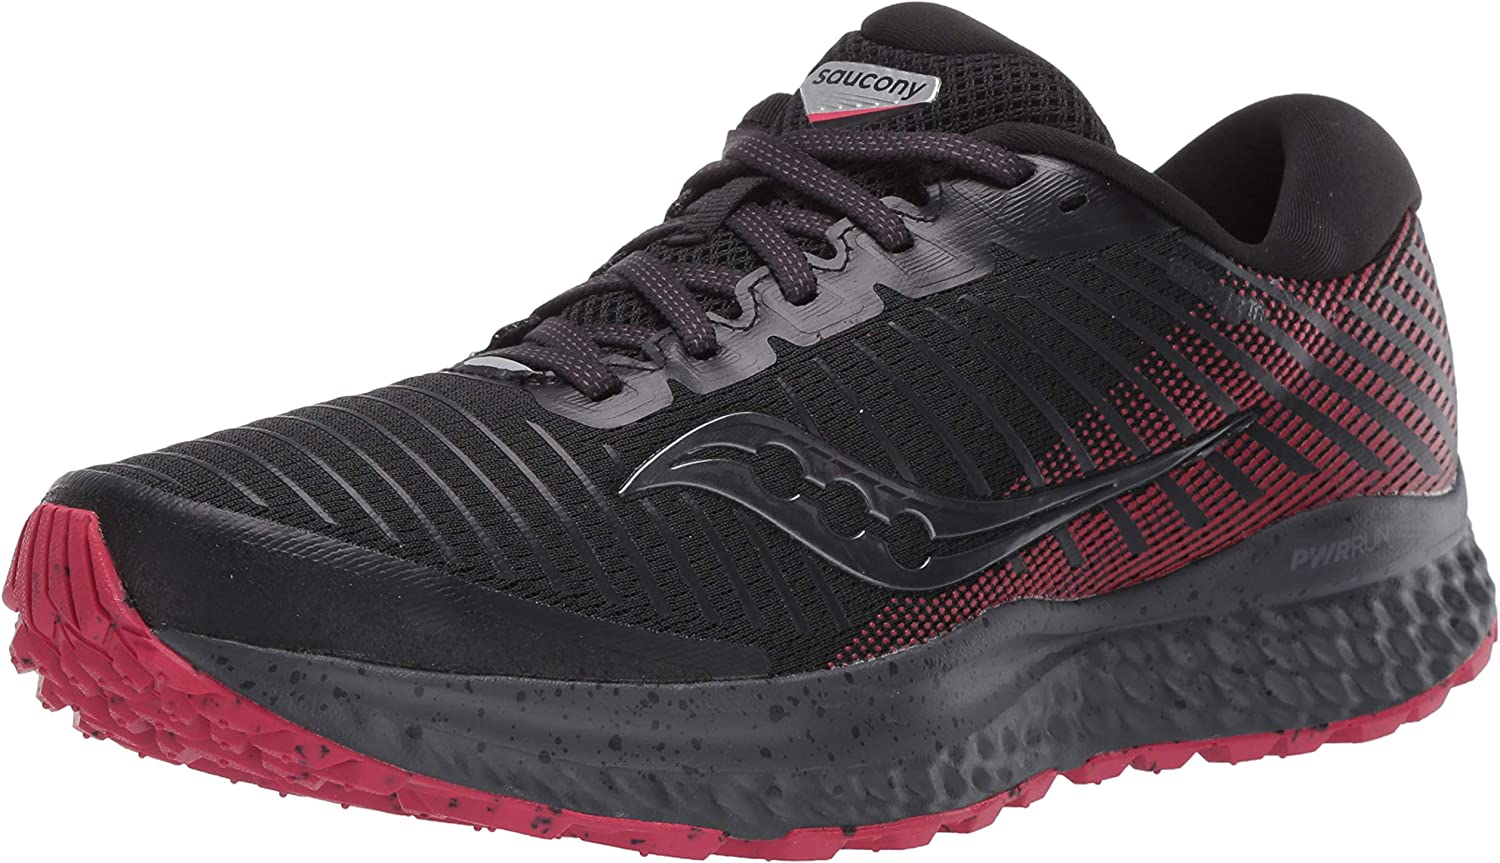 Saucony Women s Guide 13 TR Trail Running Shoe